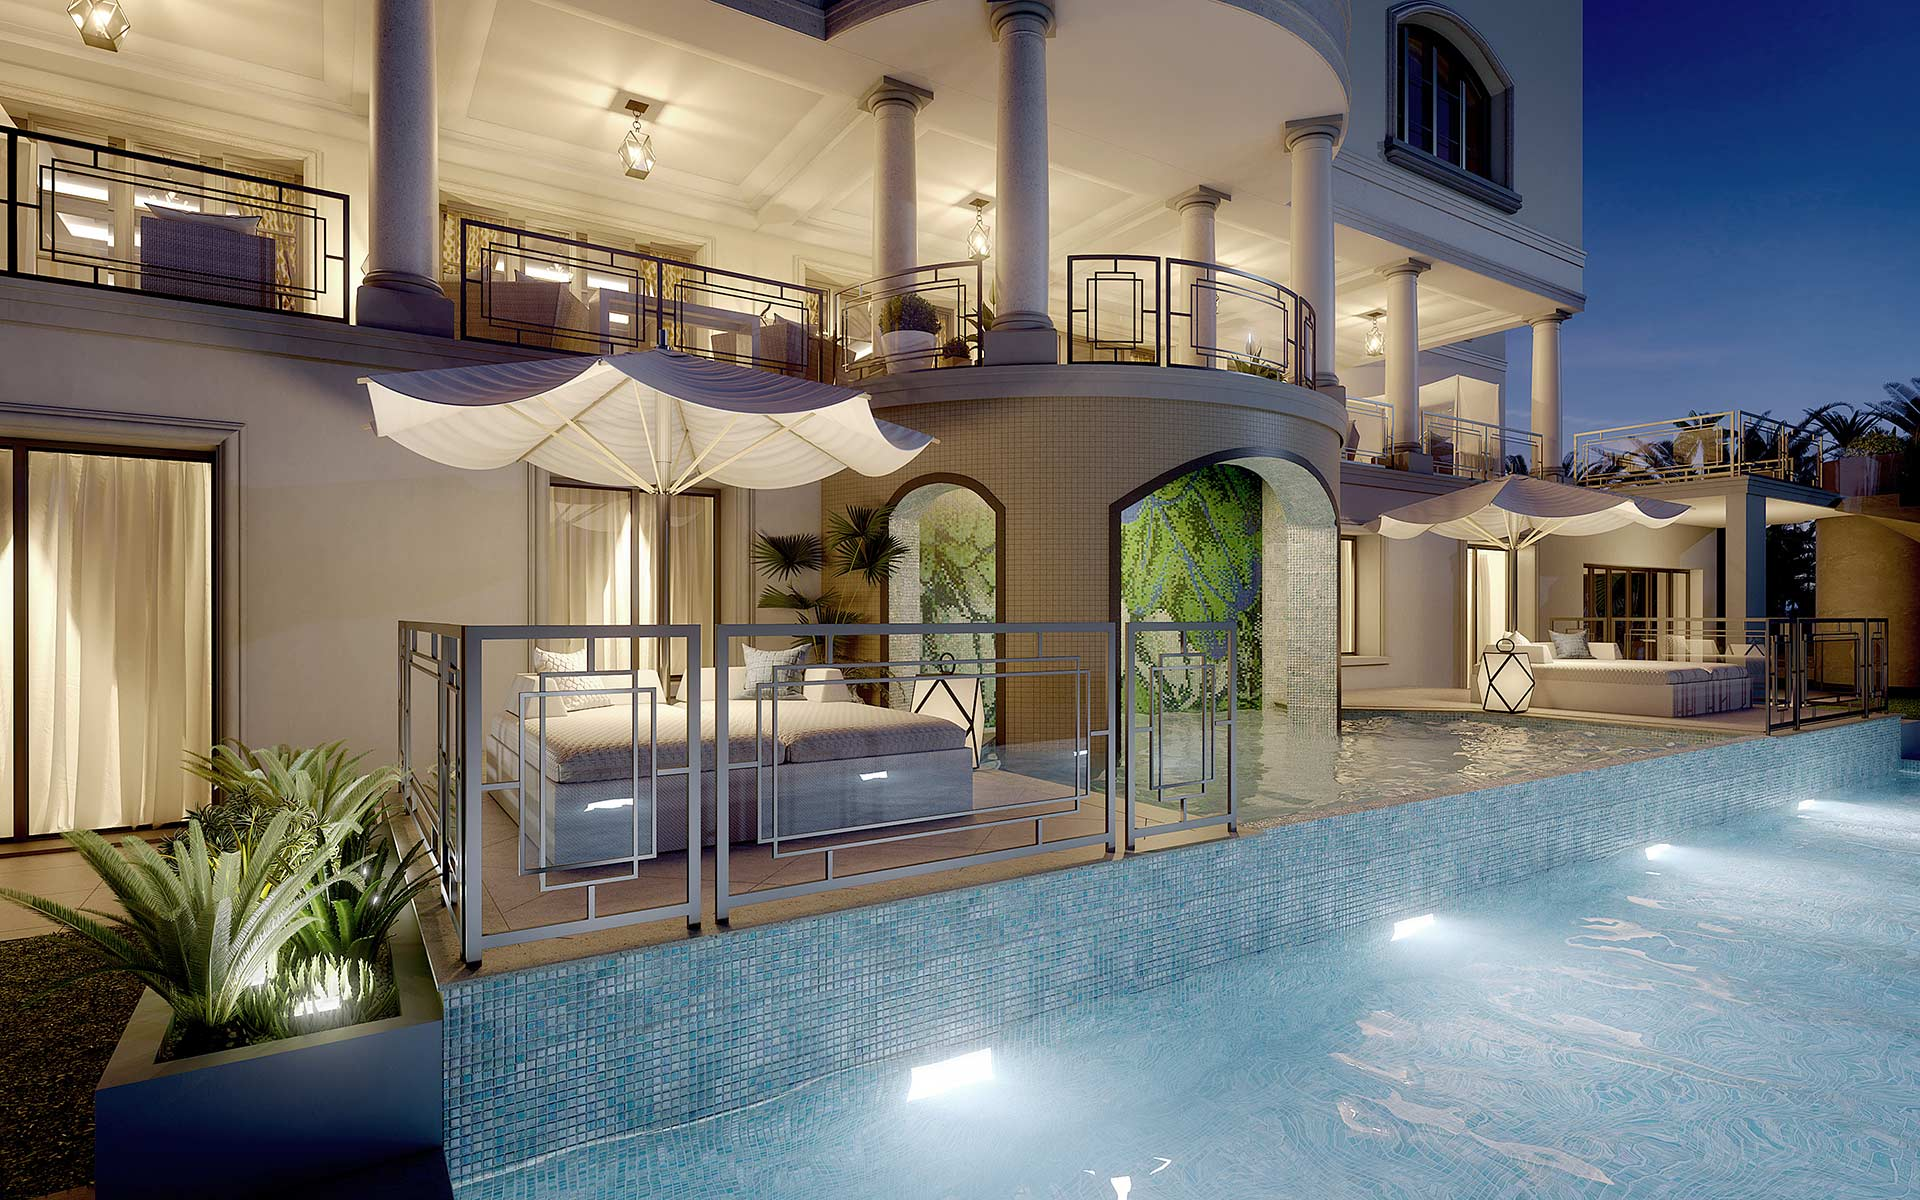 3D synthesis image of a pool villa by night